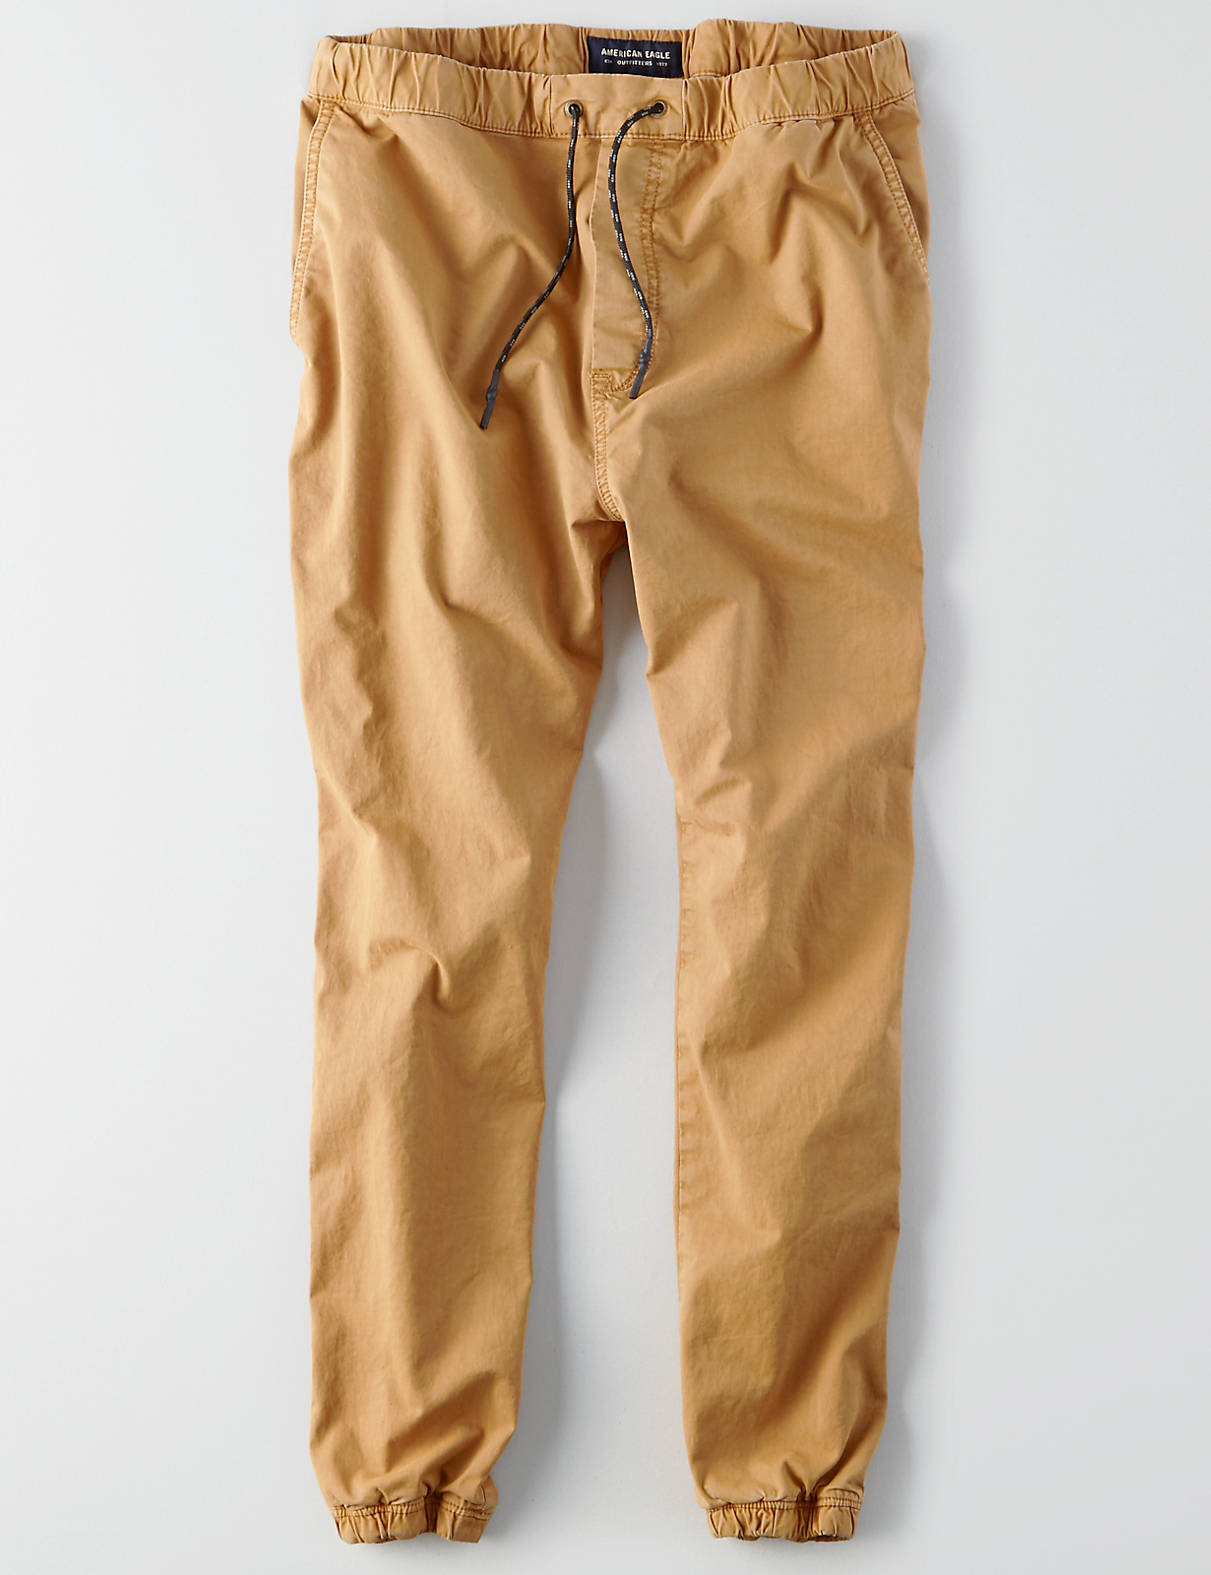 khaki jeans display product reviews for aeo extreme flex twill jogger IOPZWJP